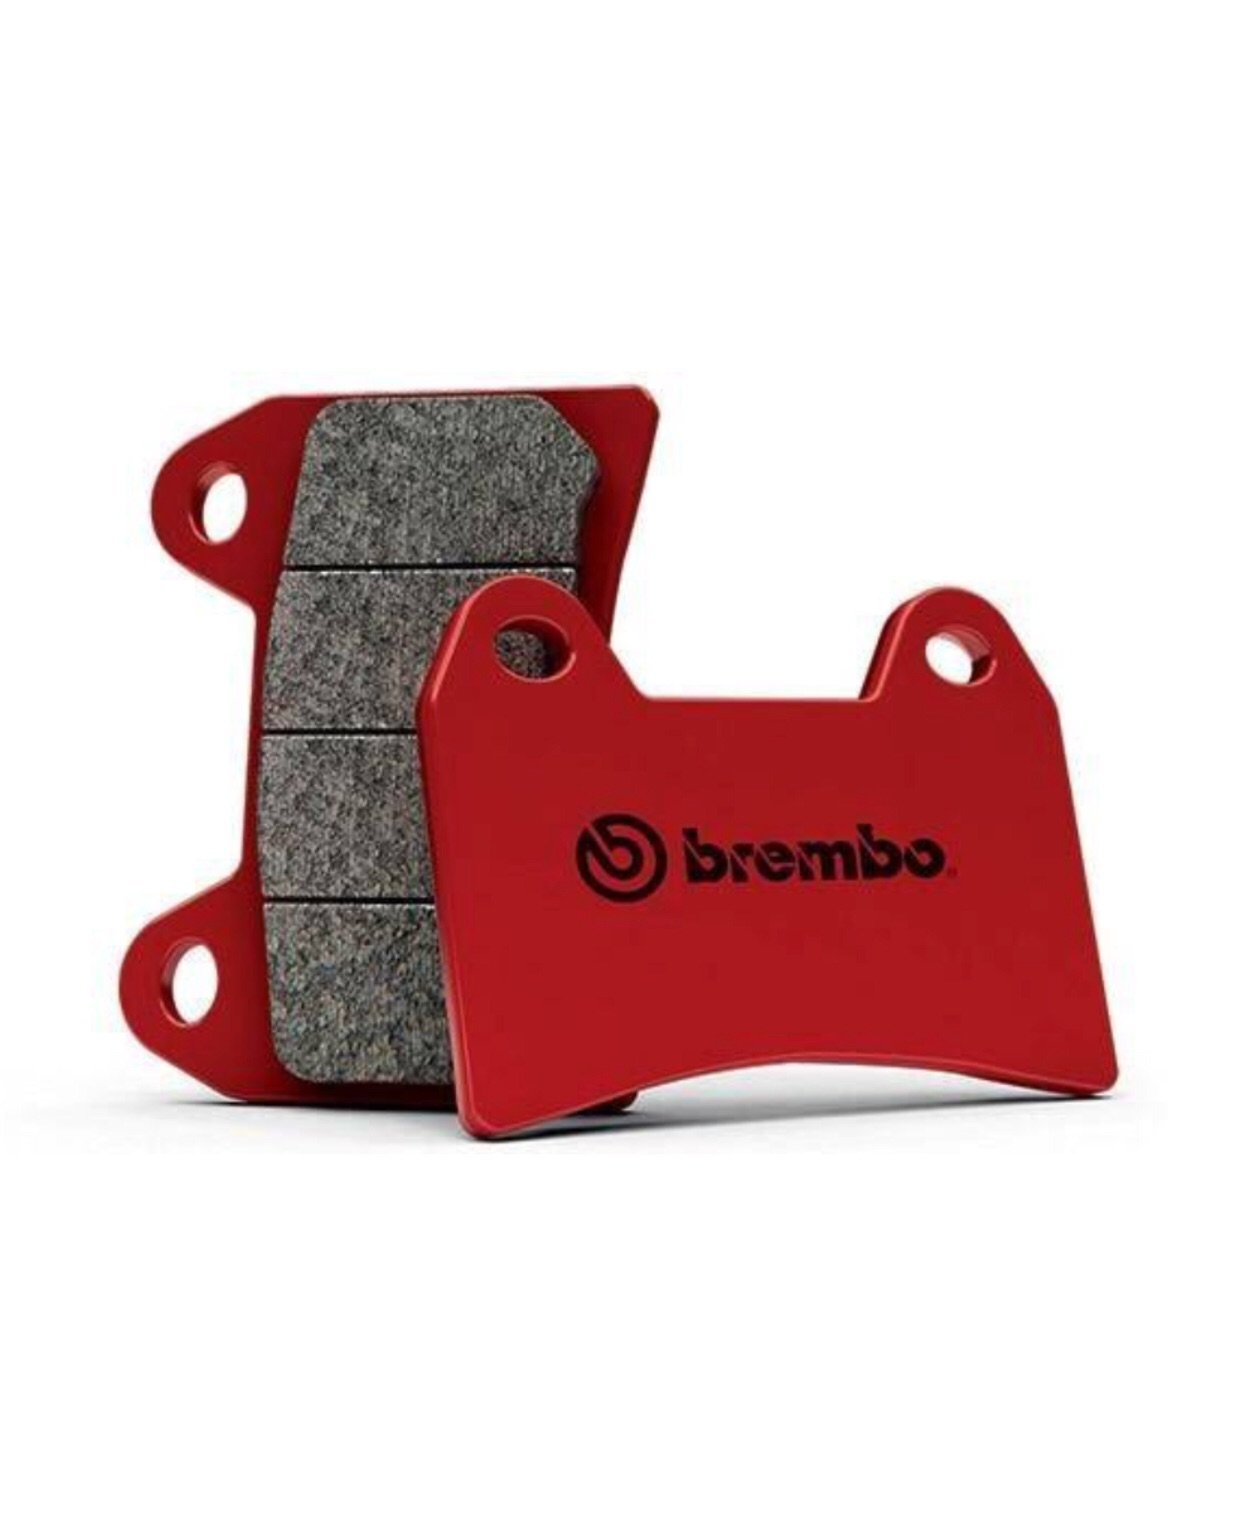 KTM, Brake Pads, Brembo - Race and Trackday Parts